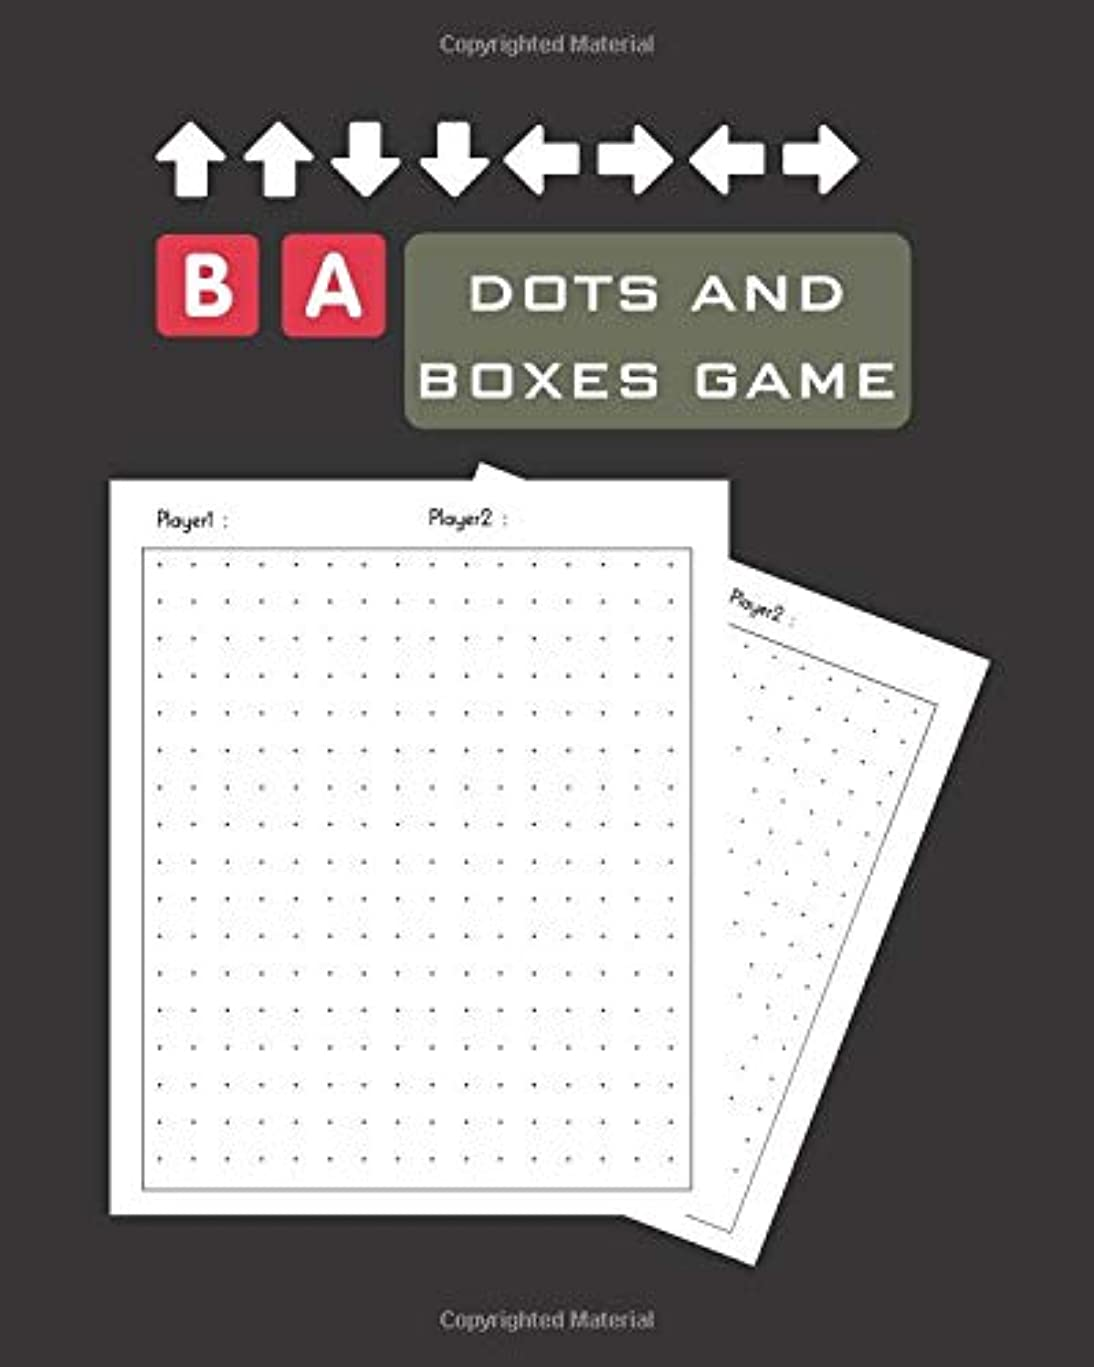 Dots And Boxes Game: Classic Pen And Paper Time Waster - Fun and Challenge to Play